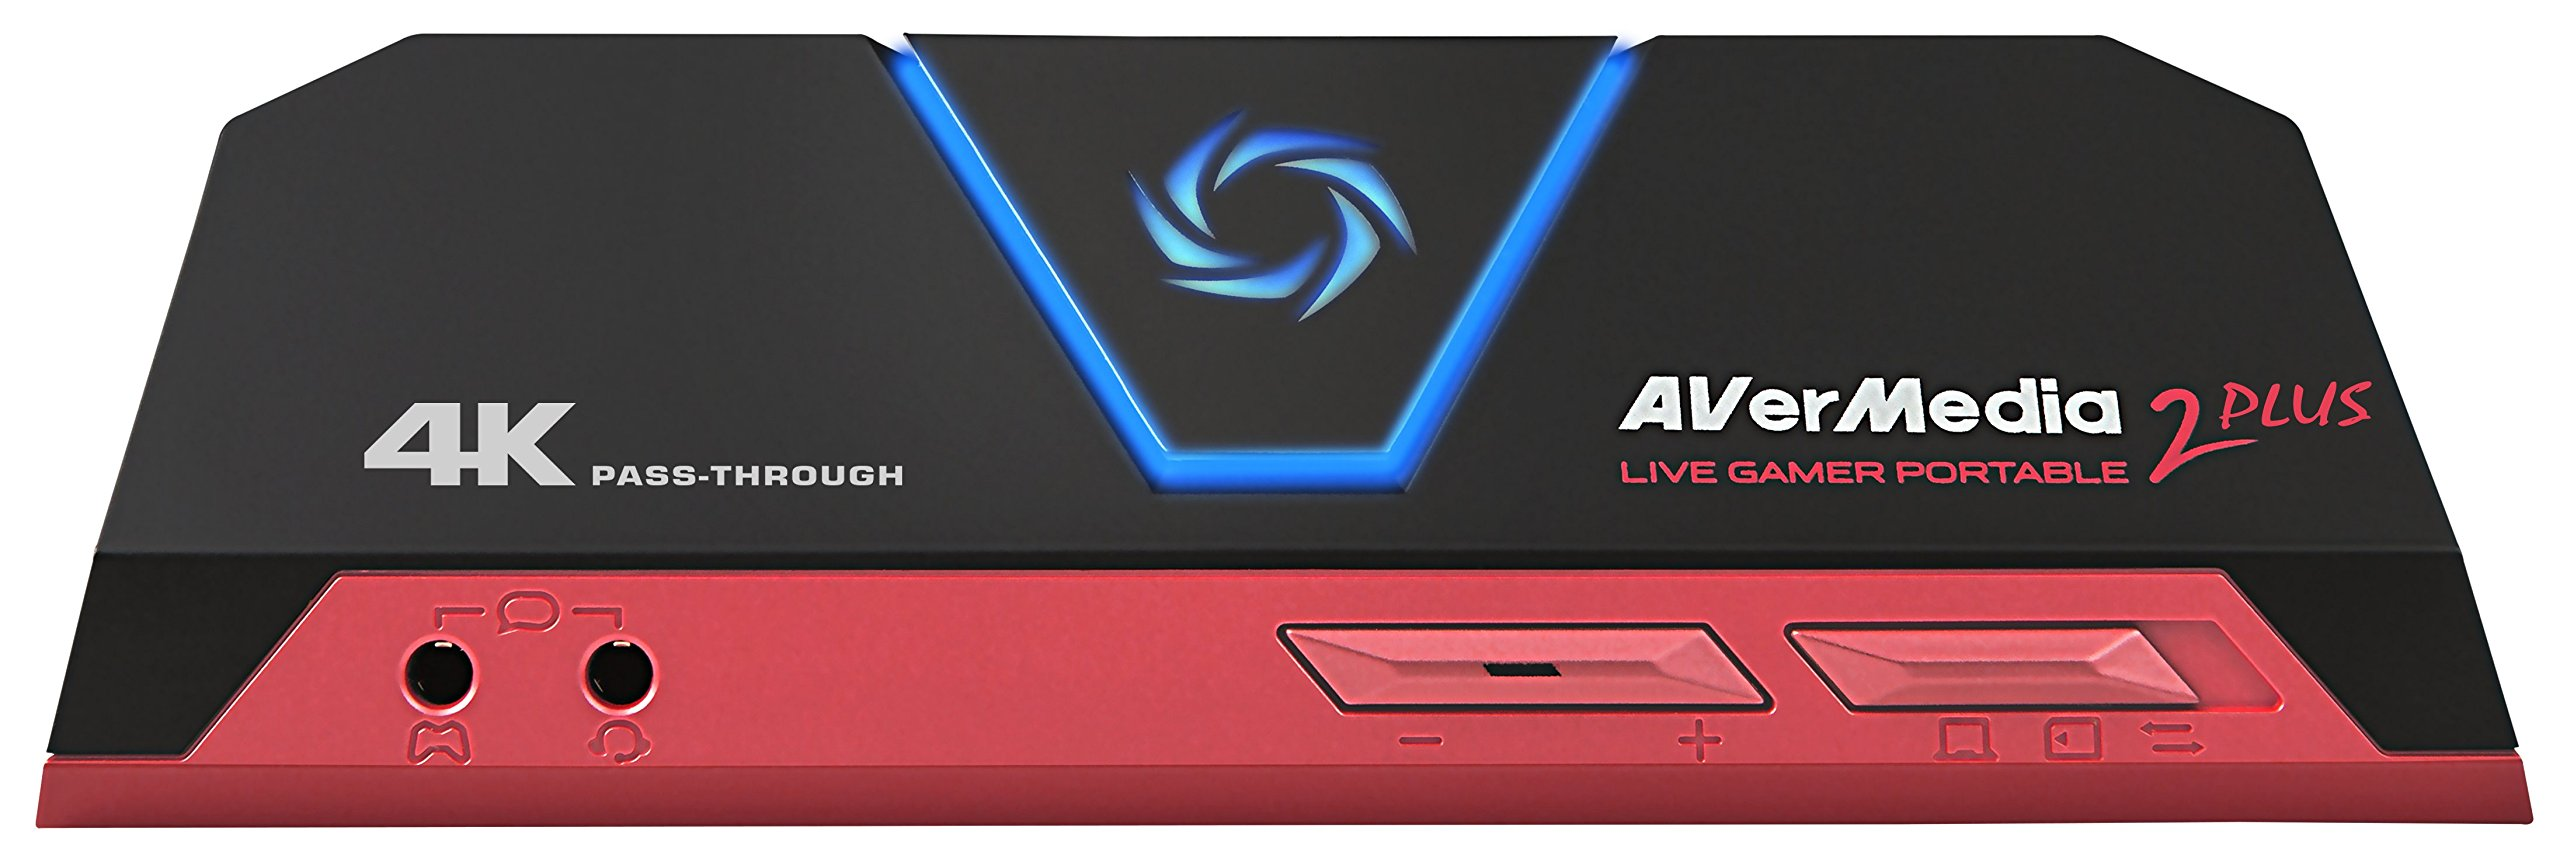 AVerMedia Live Gamer Portable 2 Plus, 4K Pass-Through, Full HD 1080p60 USB Game Capture, Ultra Low Latency, Record, Stream, Plug & Play, Party Chat for XBOX, PlayStation, Nintendo Switch (GC513) by AVerMedia